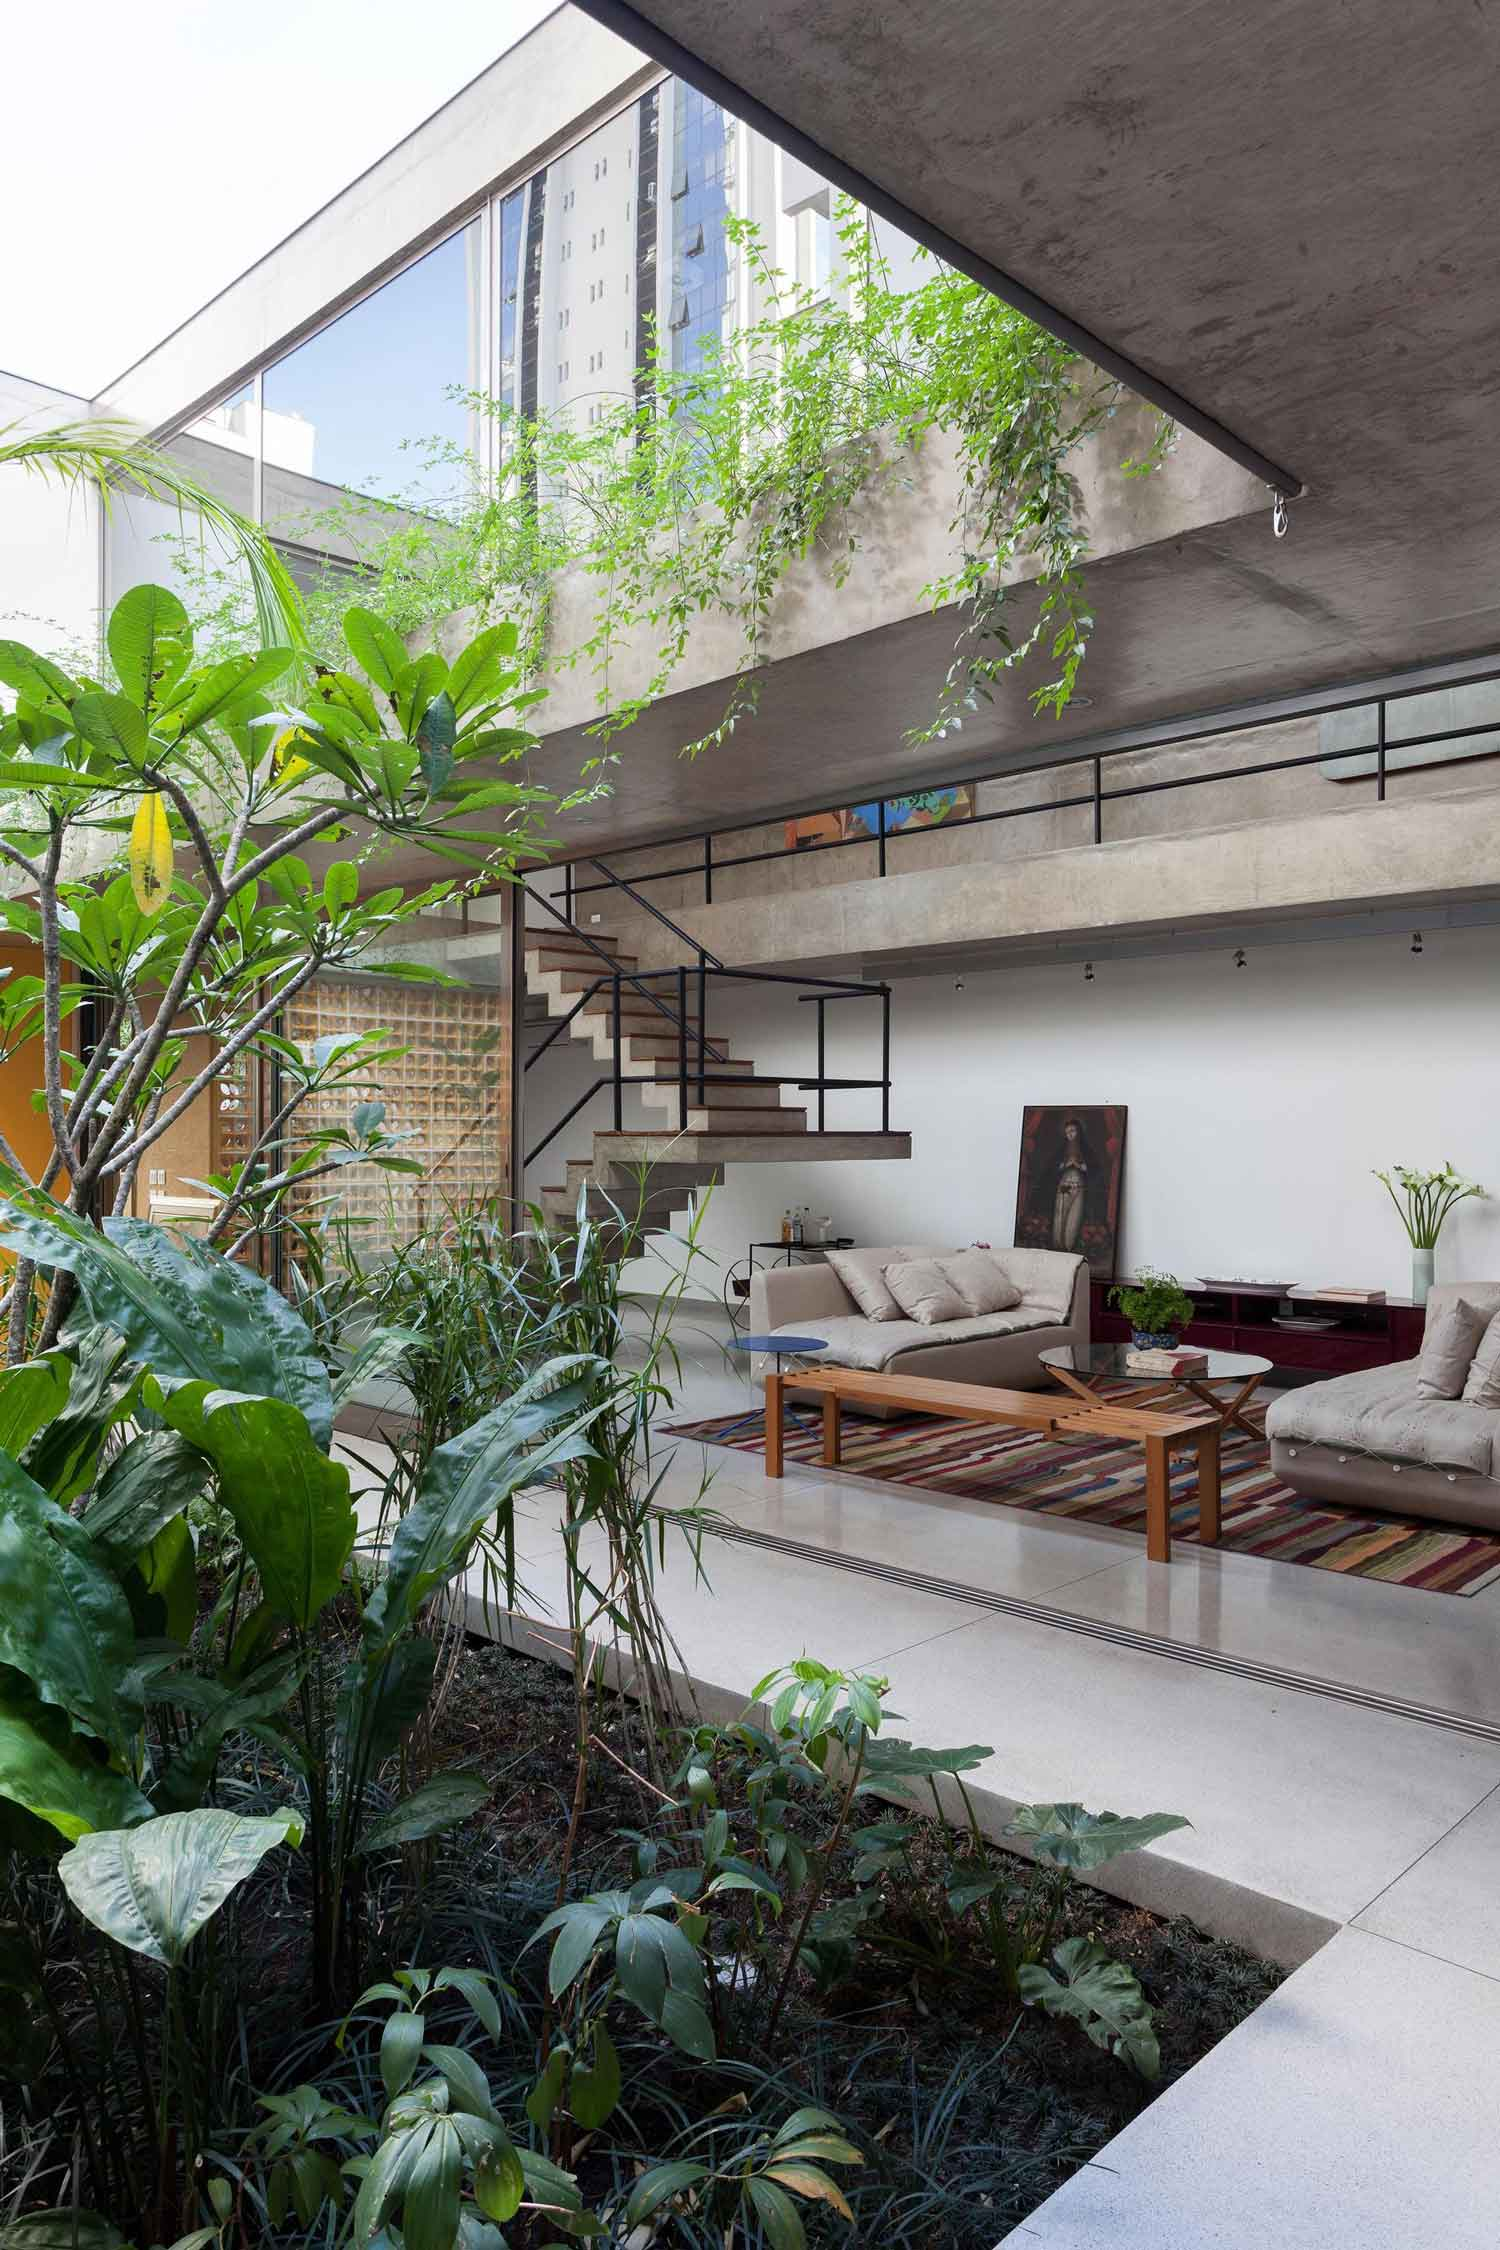 Jardins house by cr2 arquitetura in s o paulo yellowtrace for Architecture de jardin